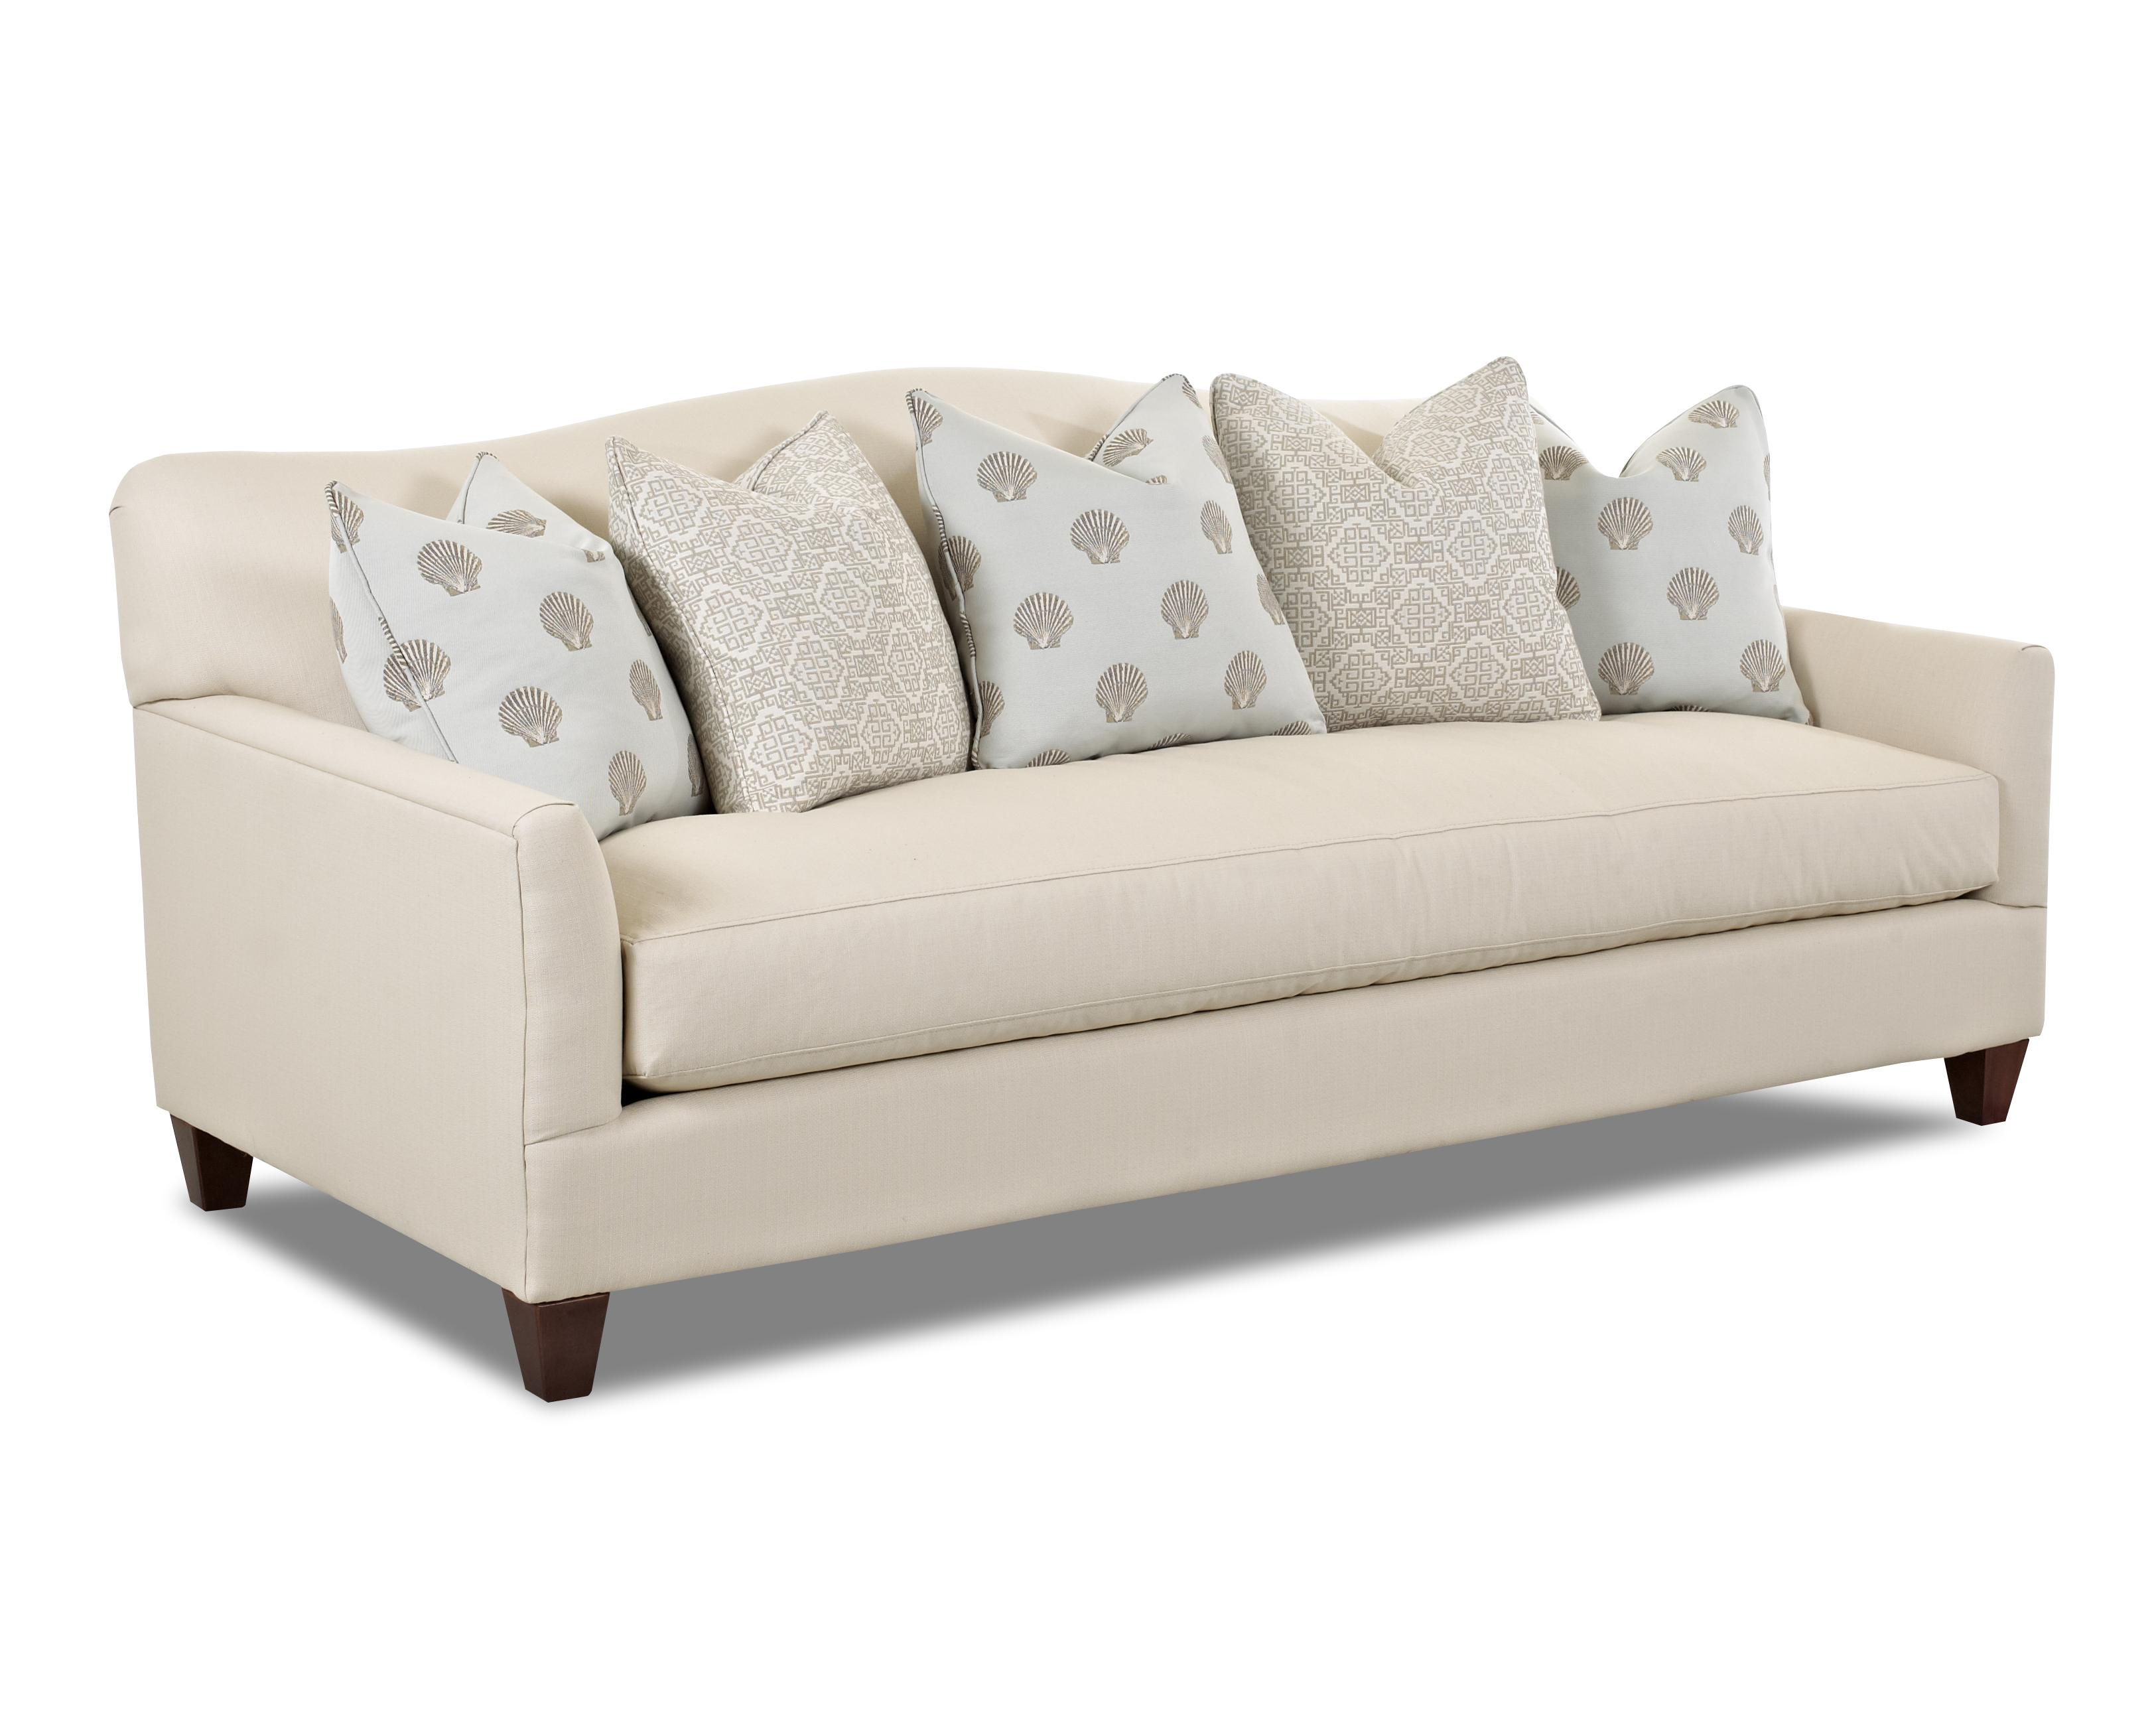 Nice Contemporary Stationary Sofa With Bench Seat Cushion And Camel Back